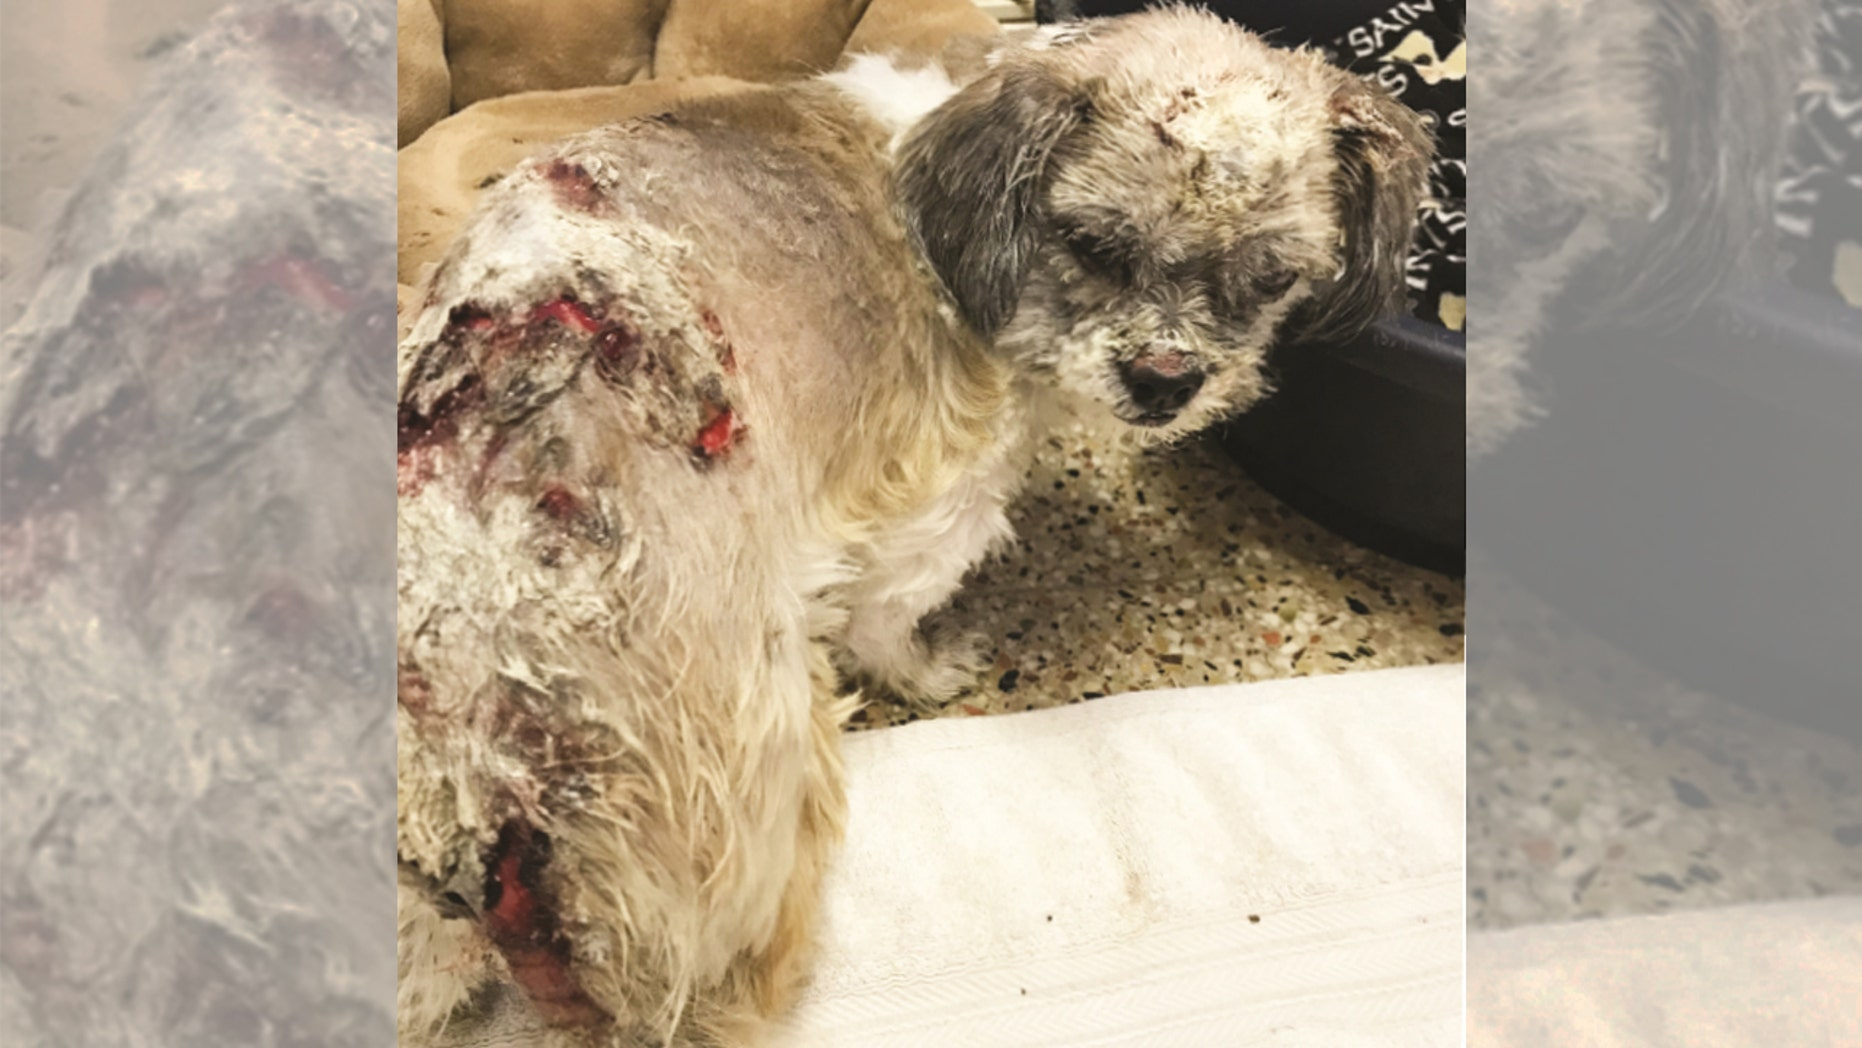 PETA is offering a $5,000 reward to anyone with information about whomever poured chemicals on a 2-year-old dog.